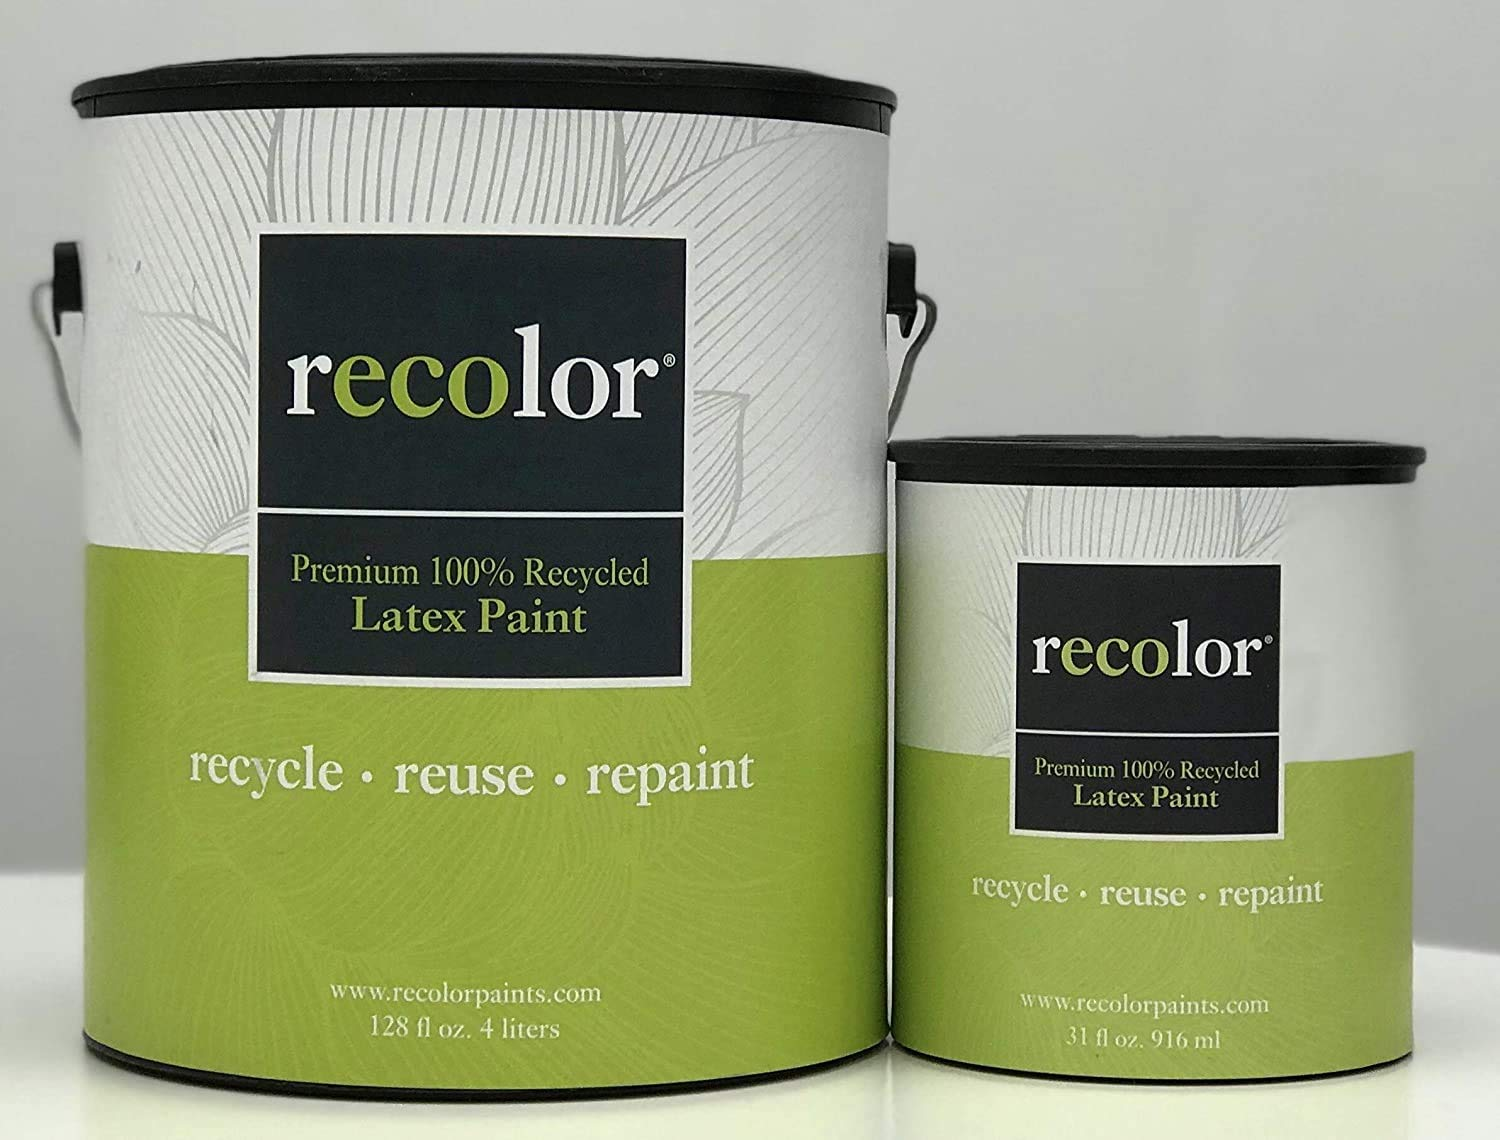 RECOLOR Paint 100% Recycled Interior Latex Paint Wall Finish, 1 Gallon, Interior - Canvas